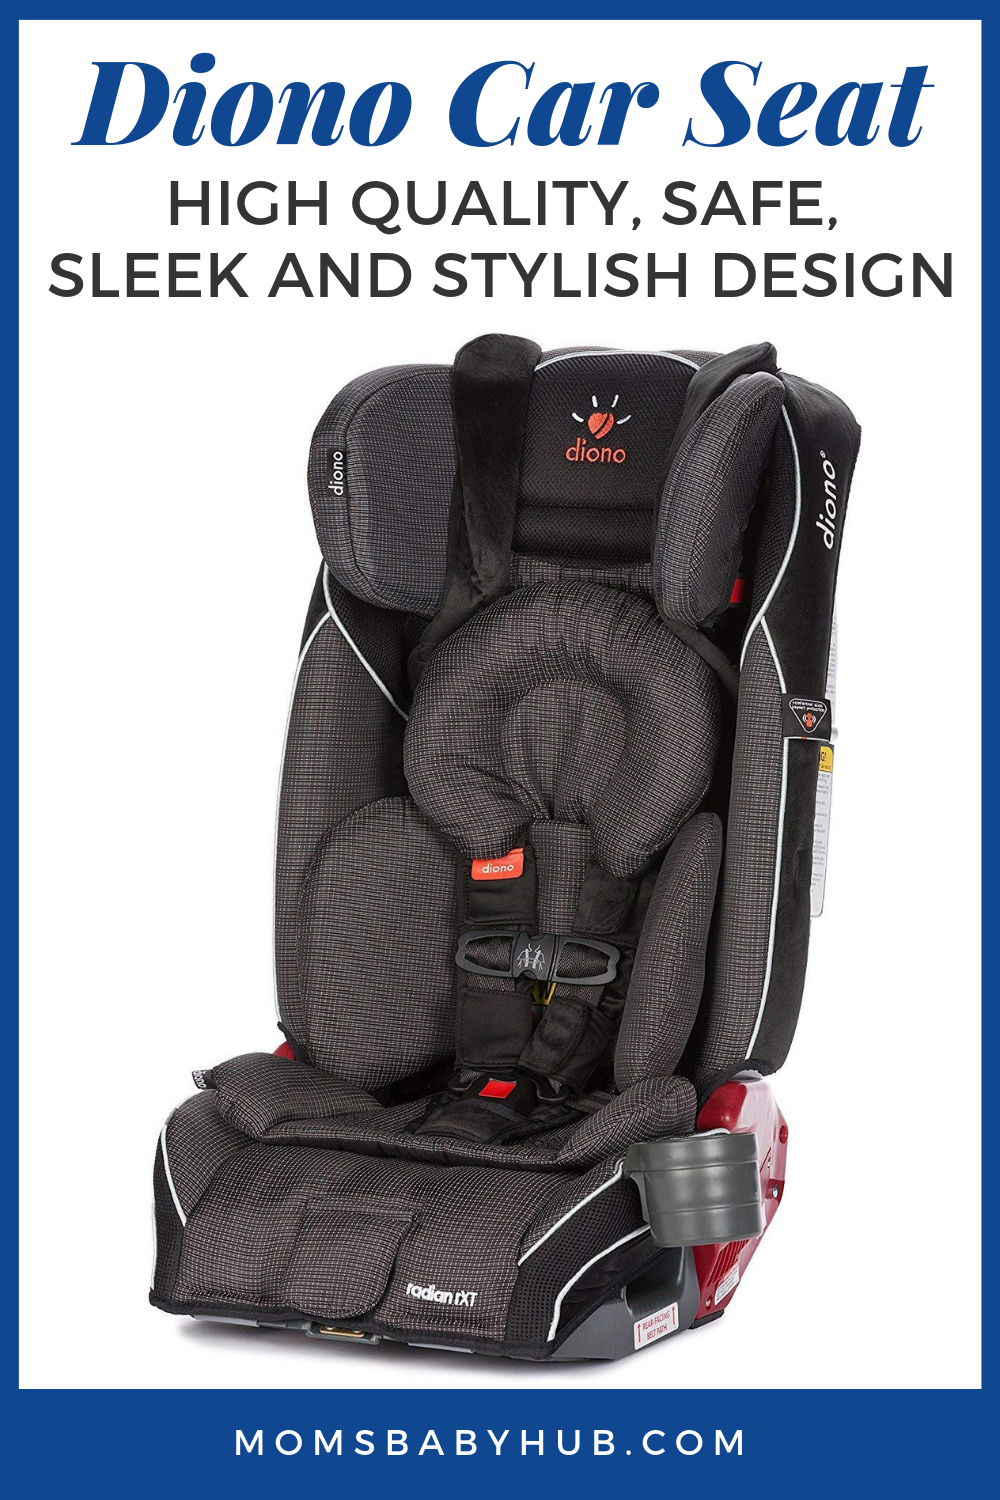 Diono Car Seat Review For Safety And Value Conscious Parents Choosing A Child